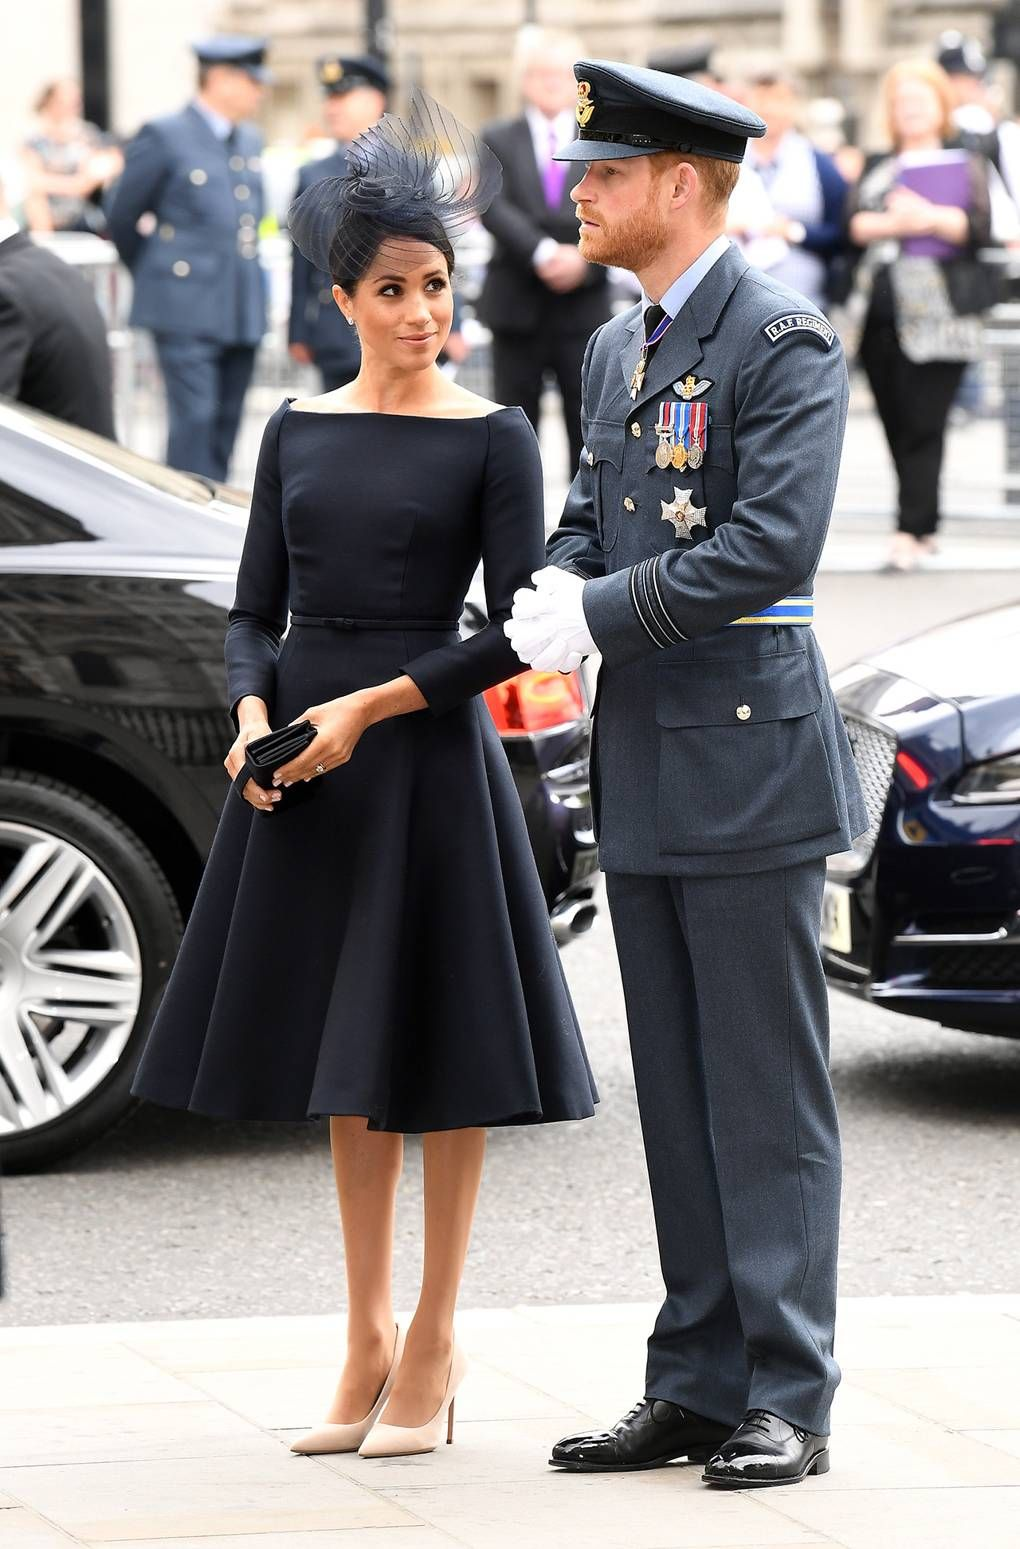 meghan markle wearing a little black dior dress to the raf 100th anniversary celebrations fashion royal fashion meghan markle style pinterest